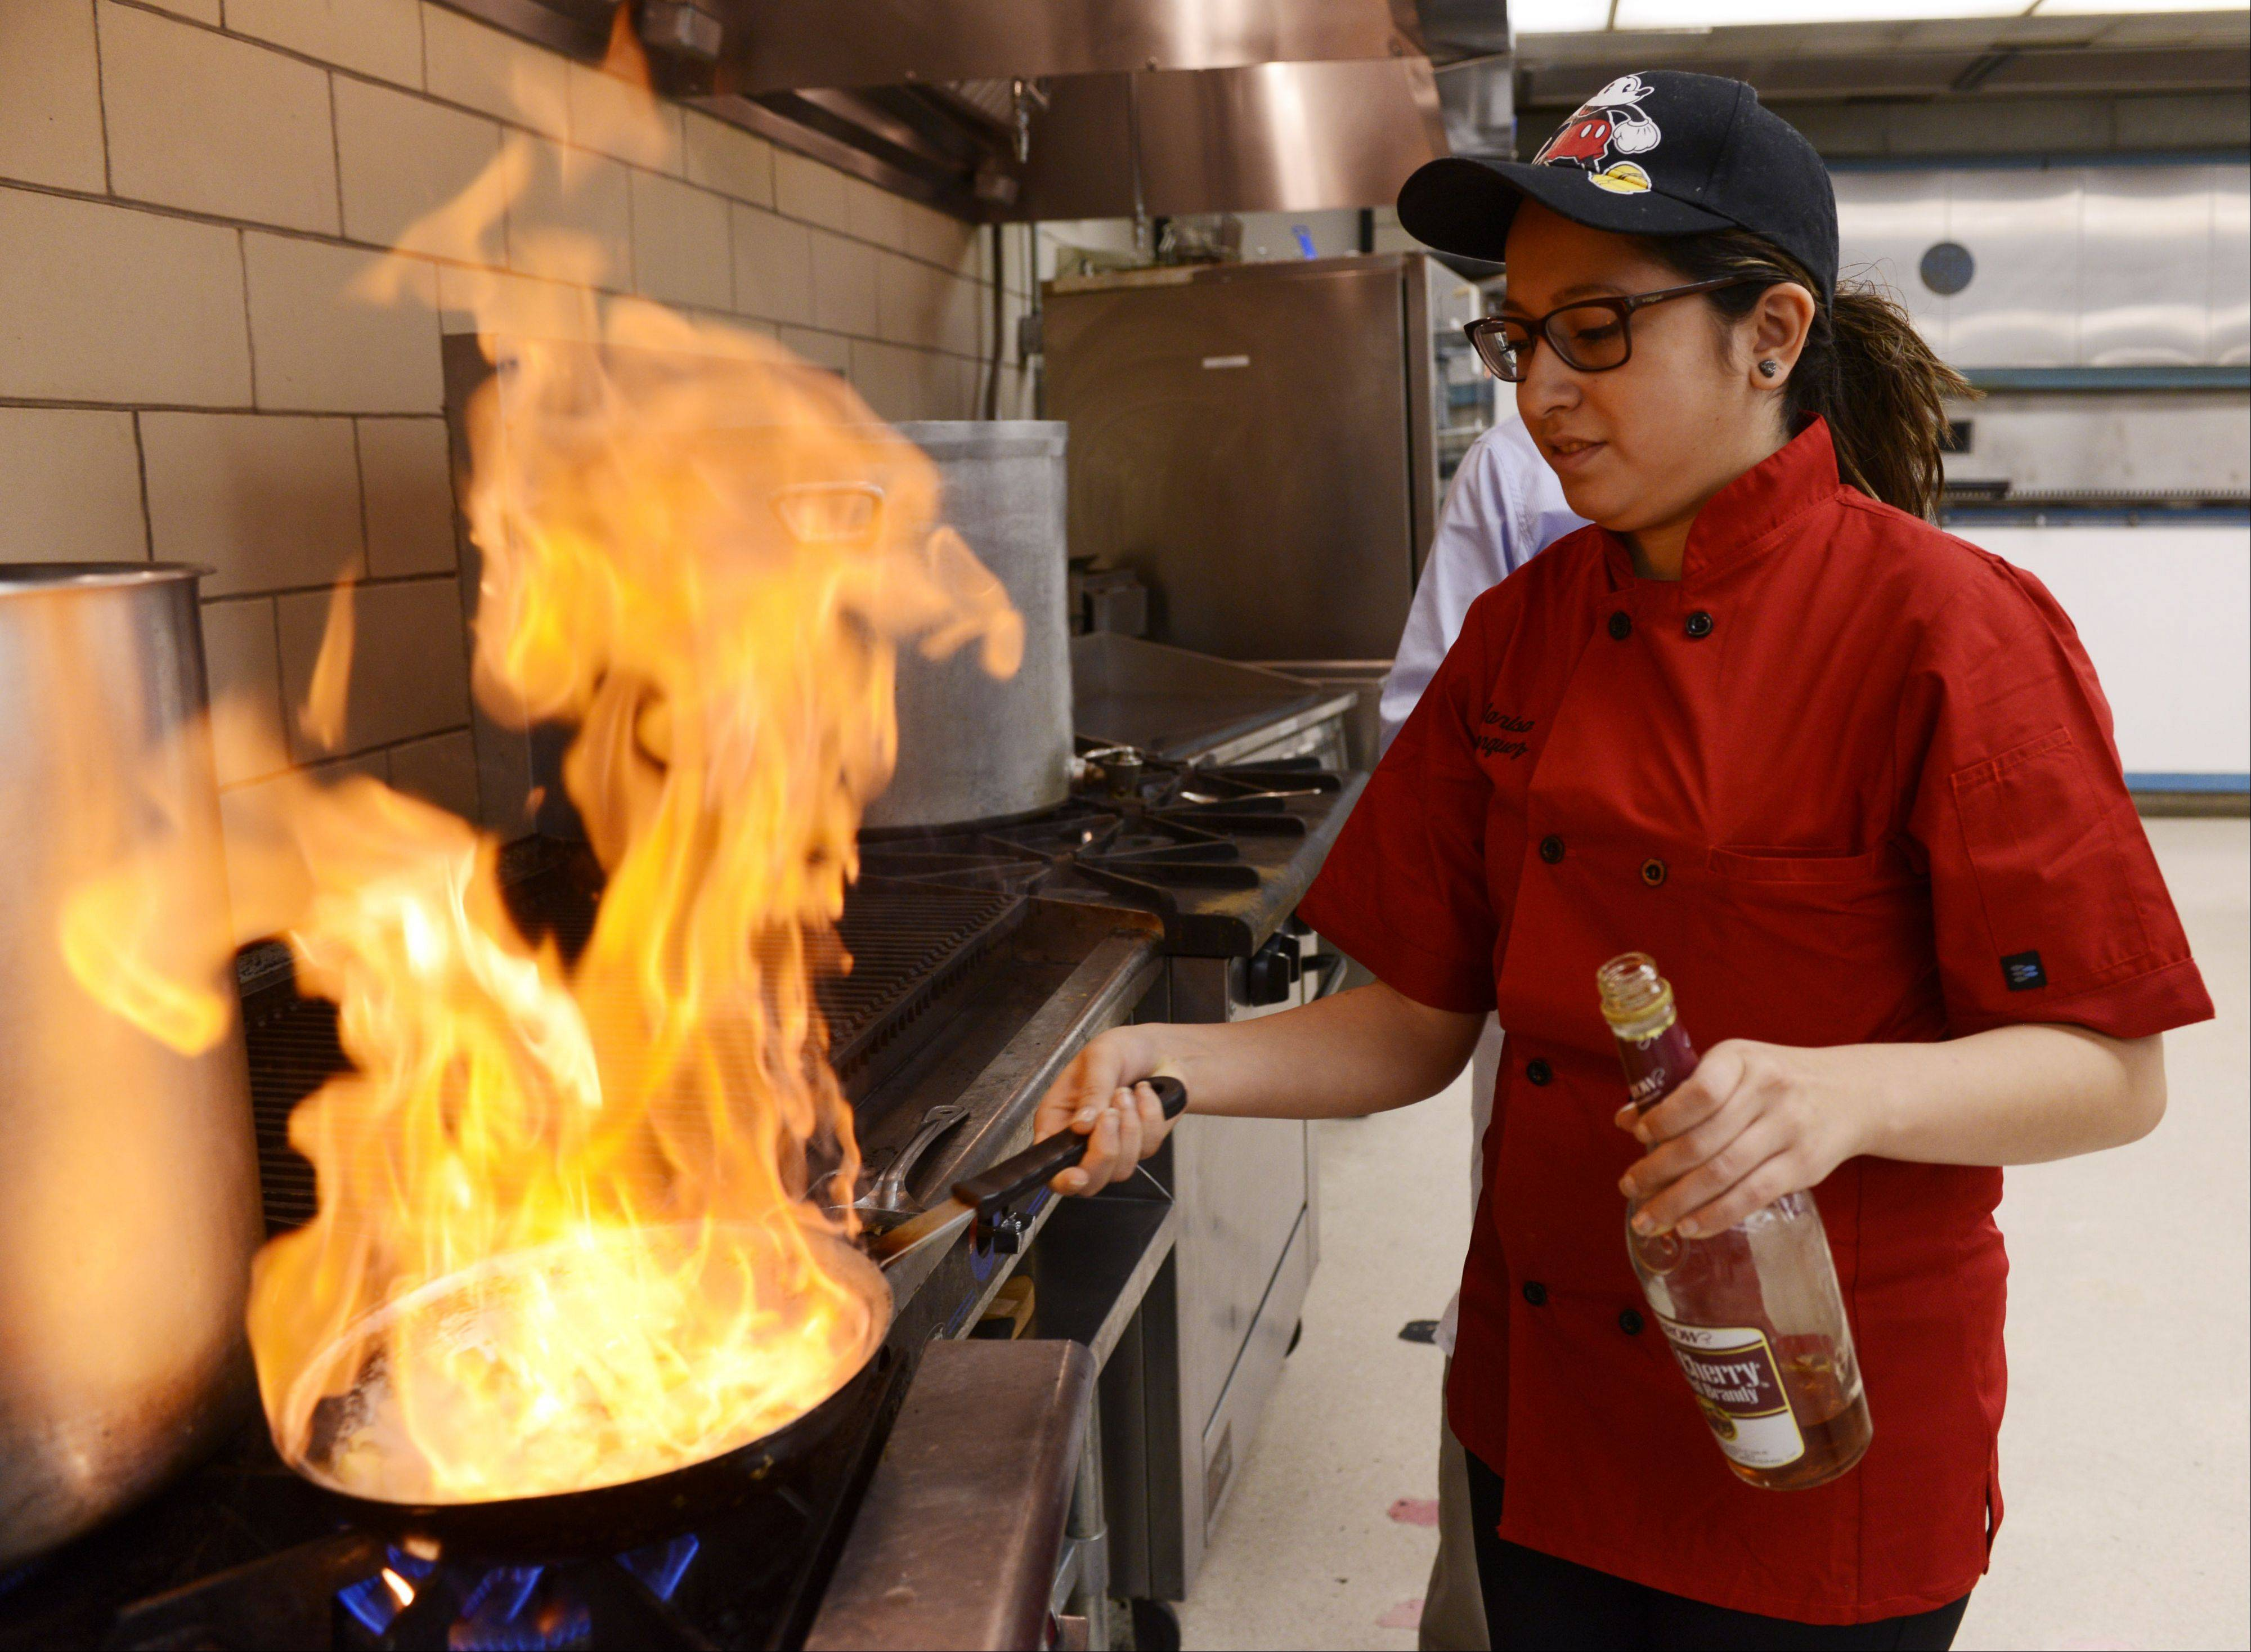 Harper culinary student aspires to cook up magic in Disney kitchen